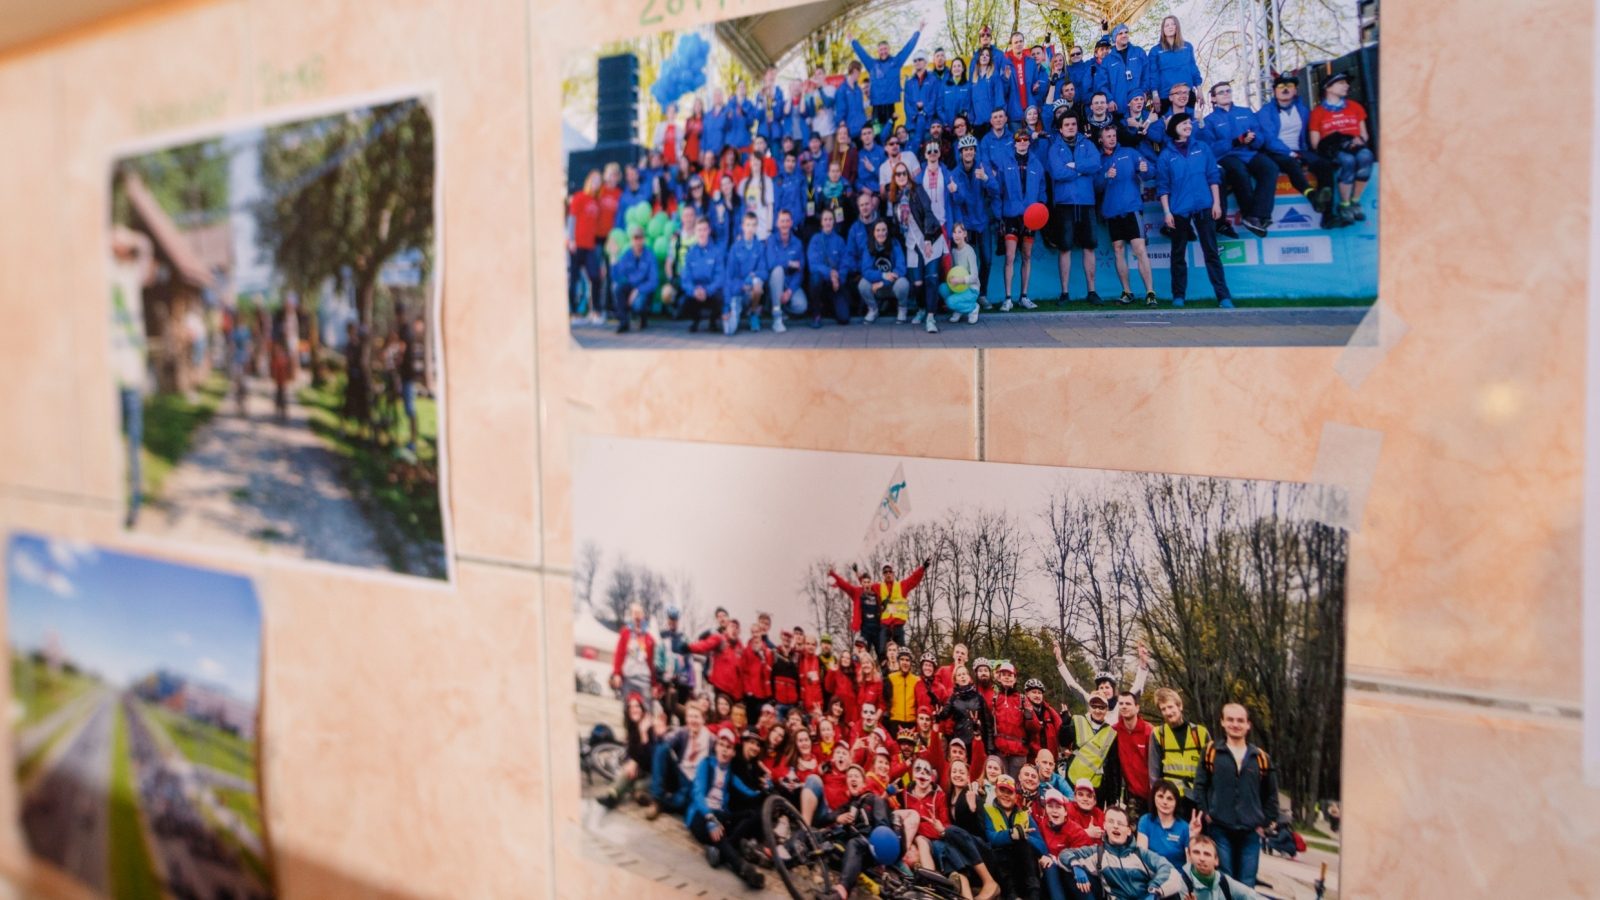 Inside the office of Minsk Cycling Community